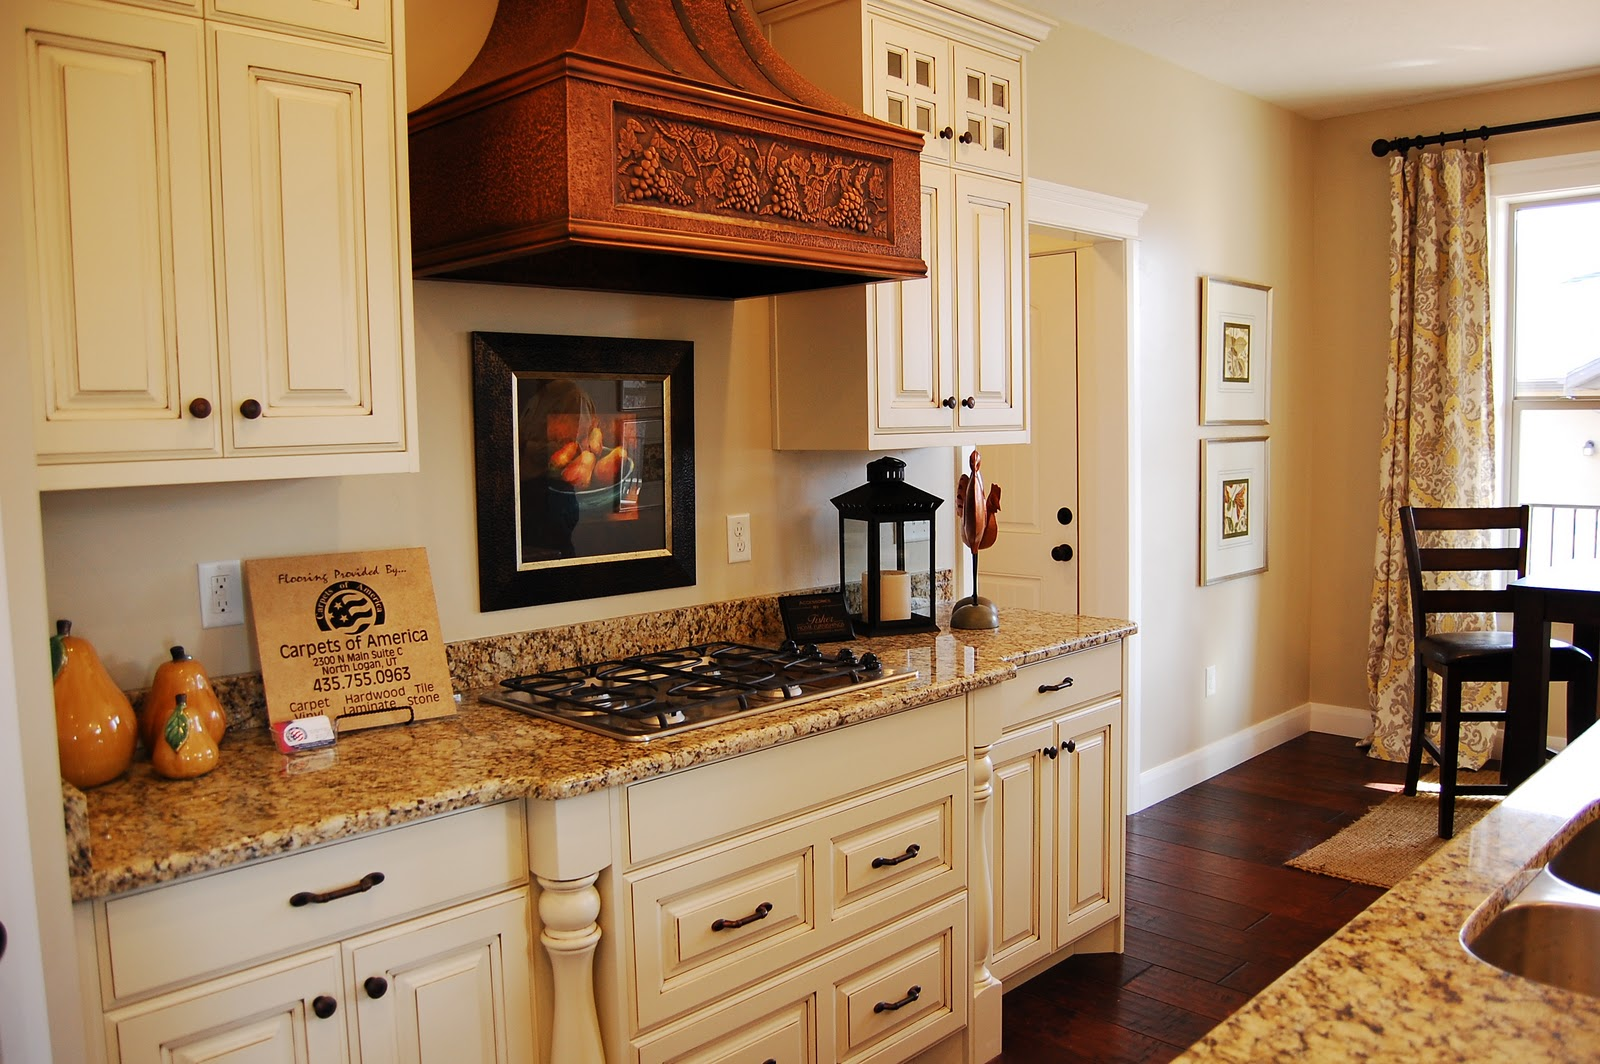 Swell Rivermill Cabinets And Woodworks Inc Home Interior And Landscaping Oversignezvosmurscom